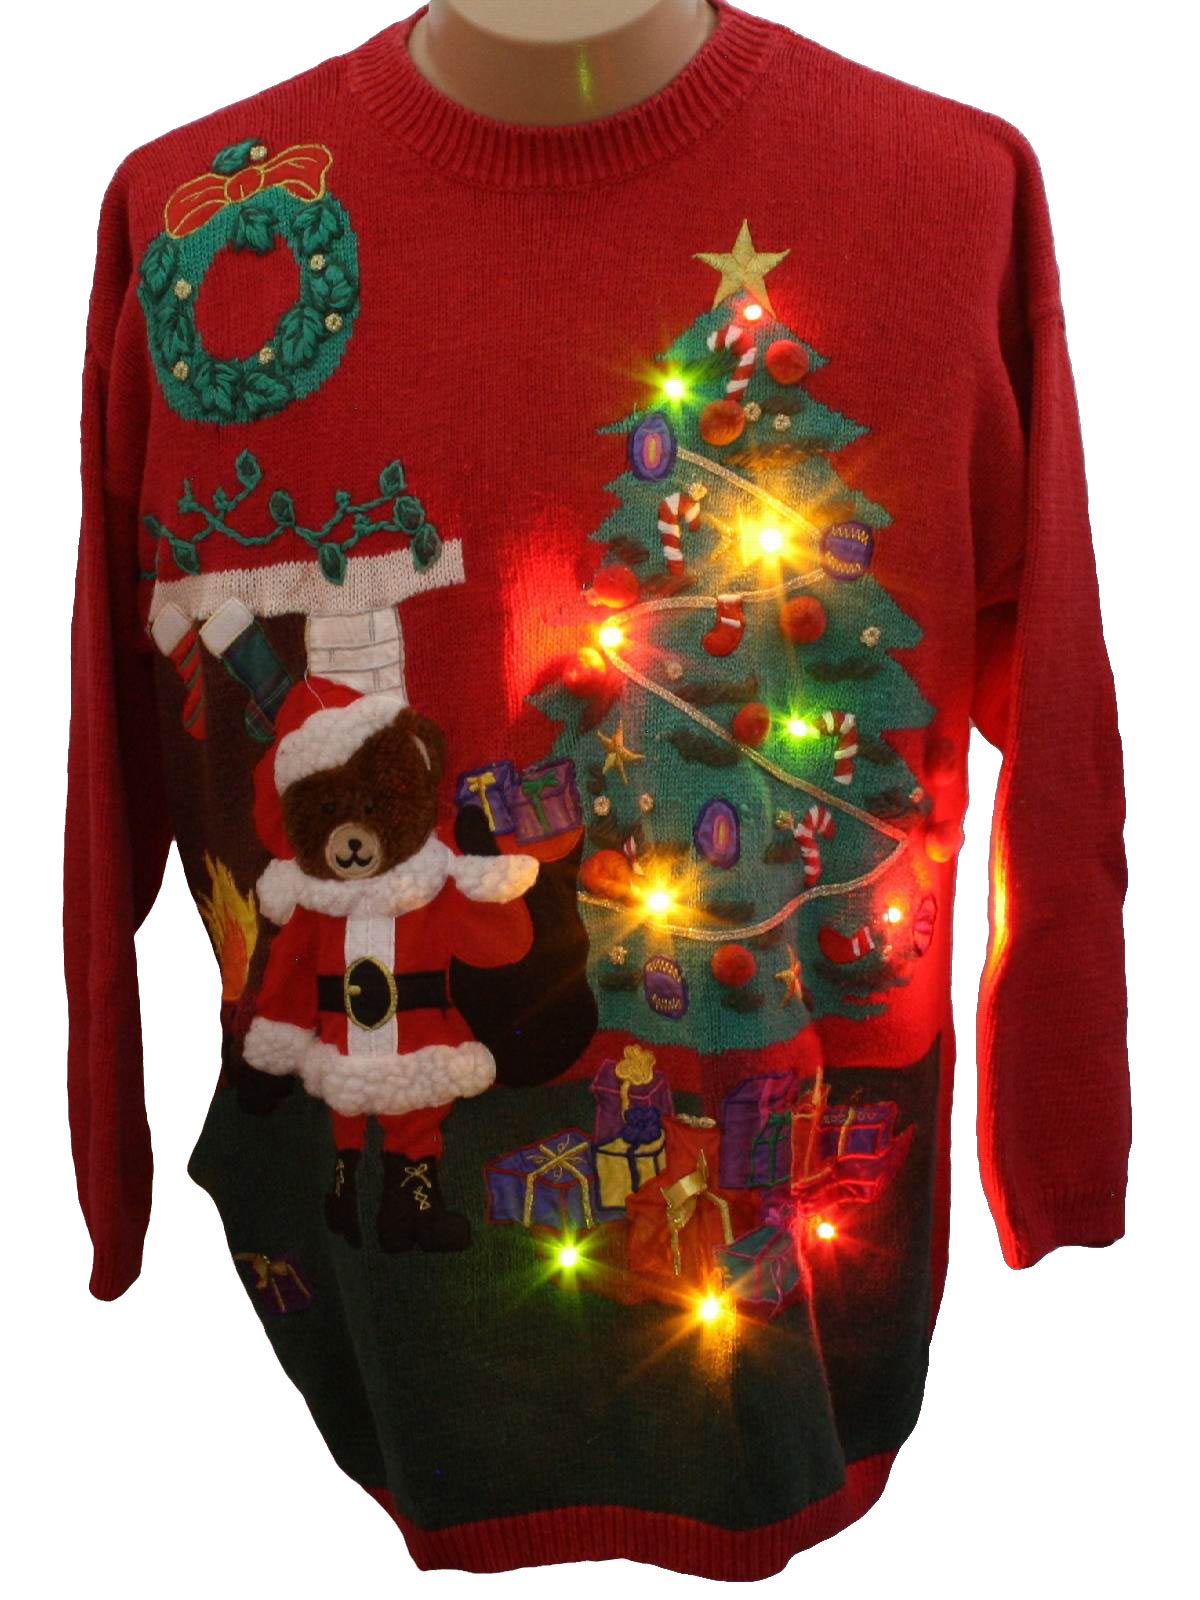 Bear Riffic Lightup Ugly Christmas Sweater White Stag Unisex Red Background Cotton Ramie